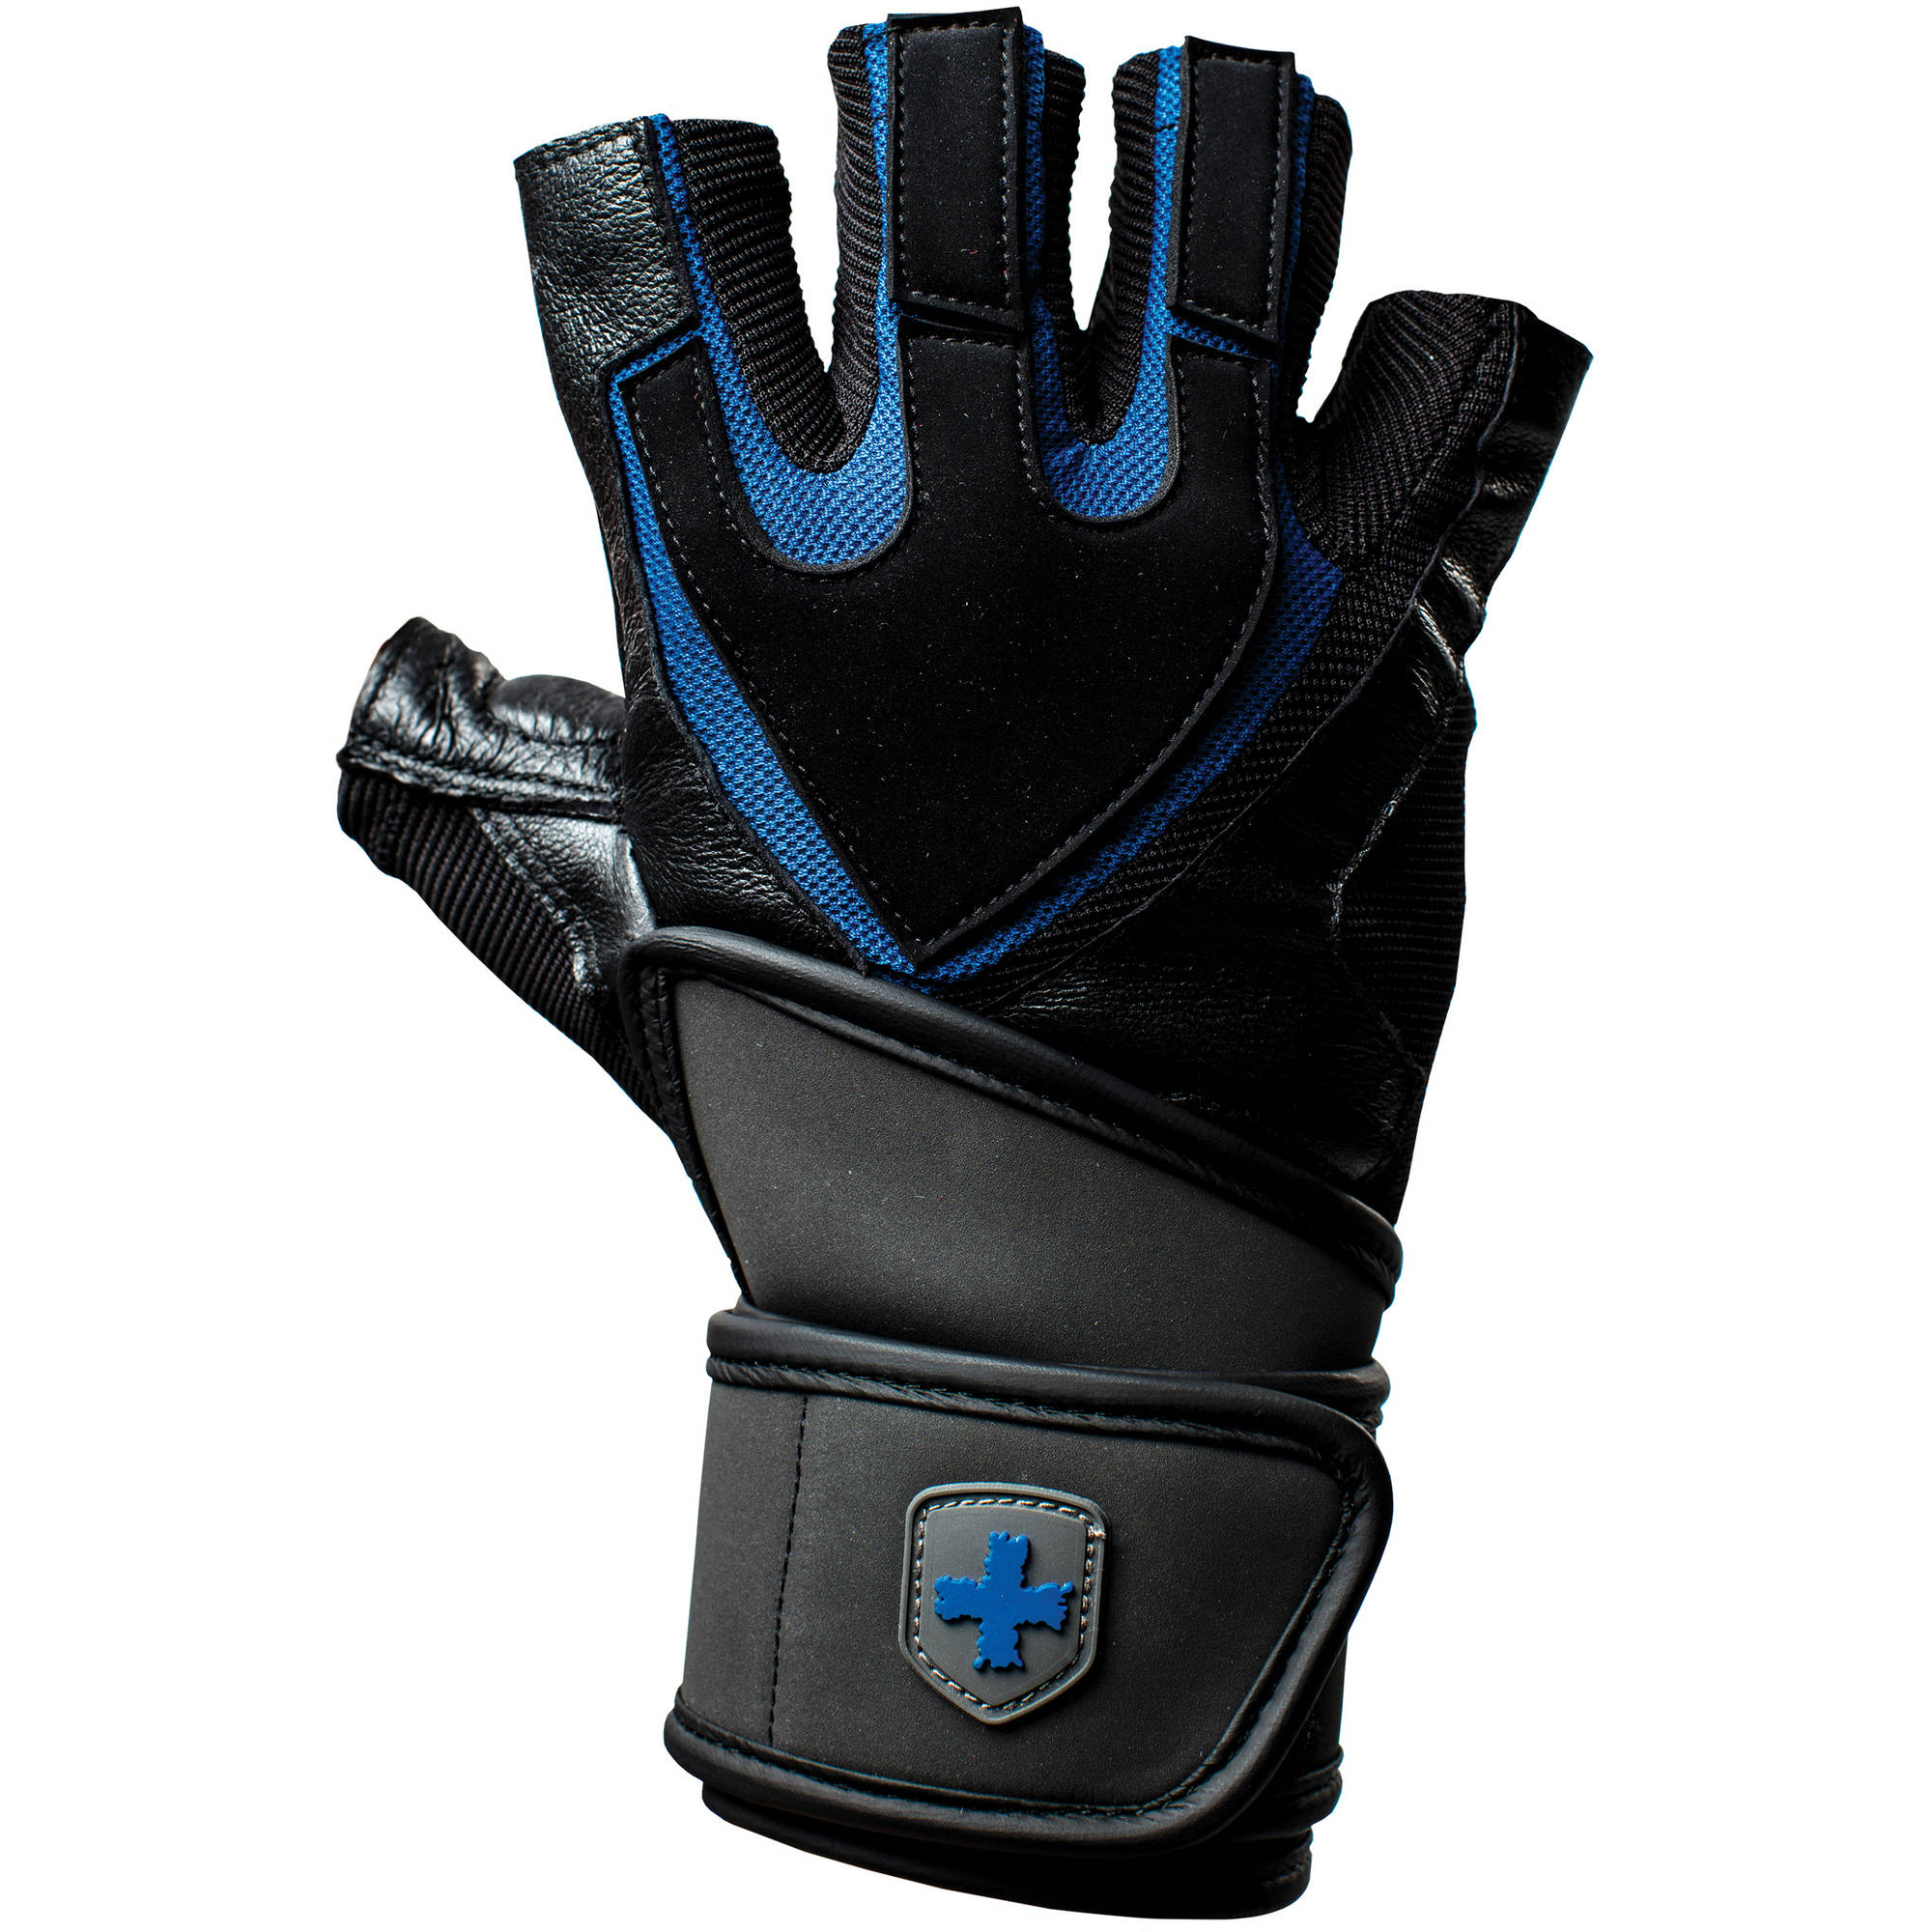 Harbinger Training Grip WristWrap Glove